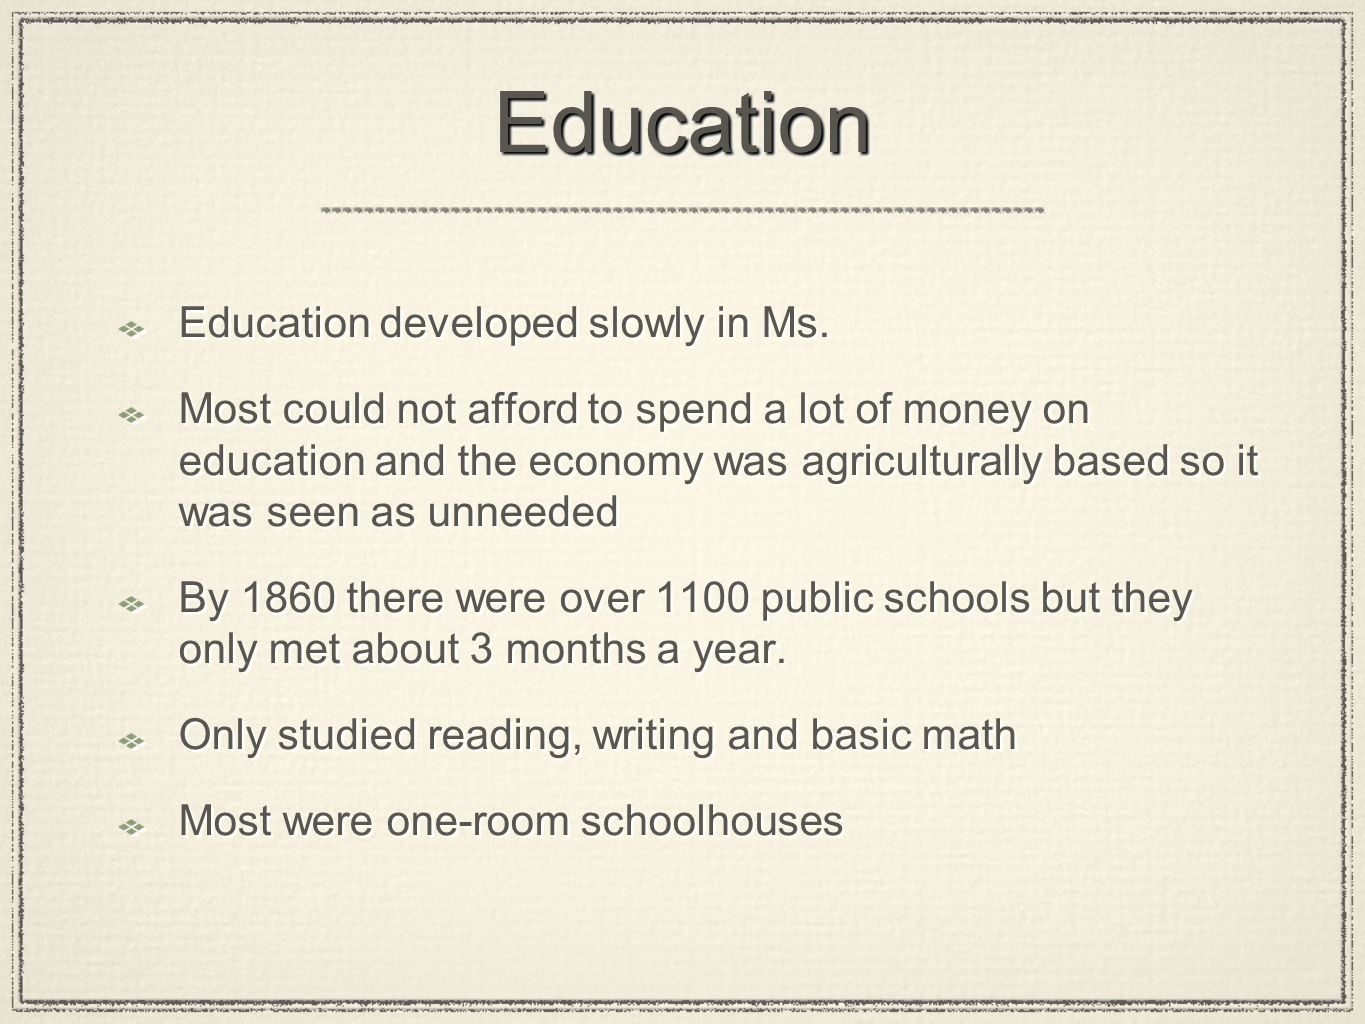 EducationEducation Education developed slowly in Ms. Most could not afford to spend a lot of money on education and the economy was agriculturally bas